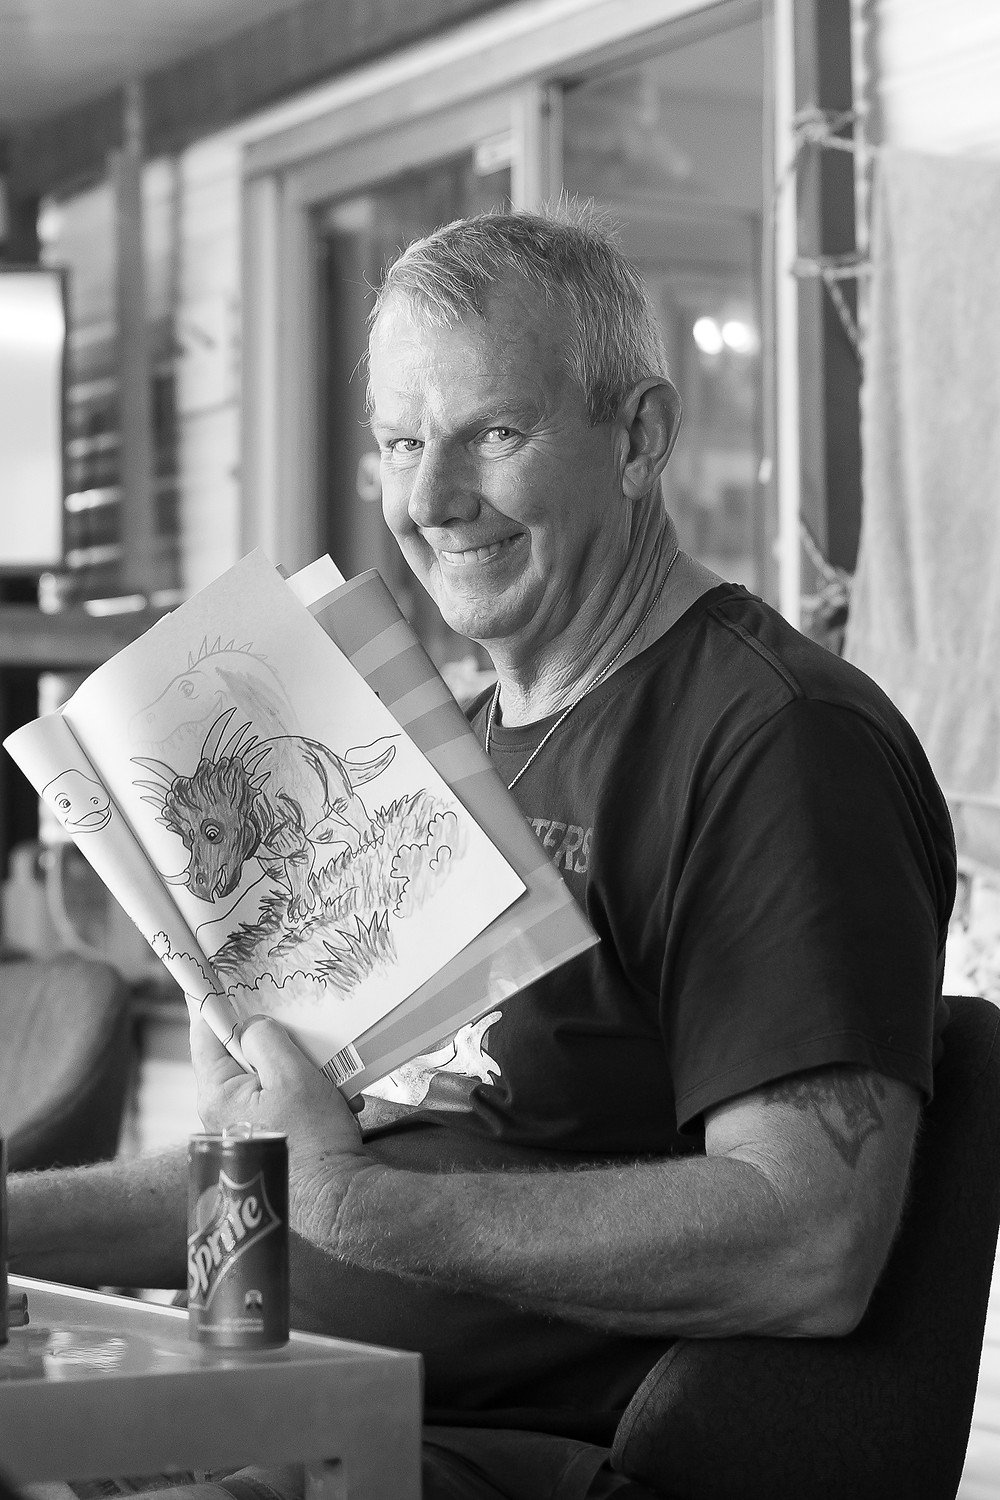 Man holding colouring in book smiling